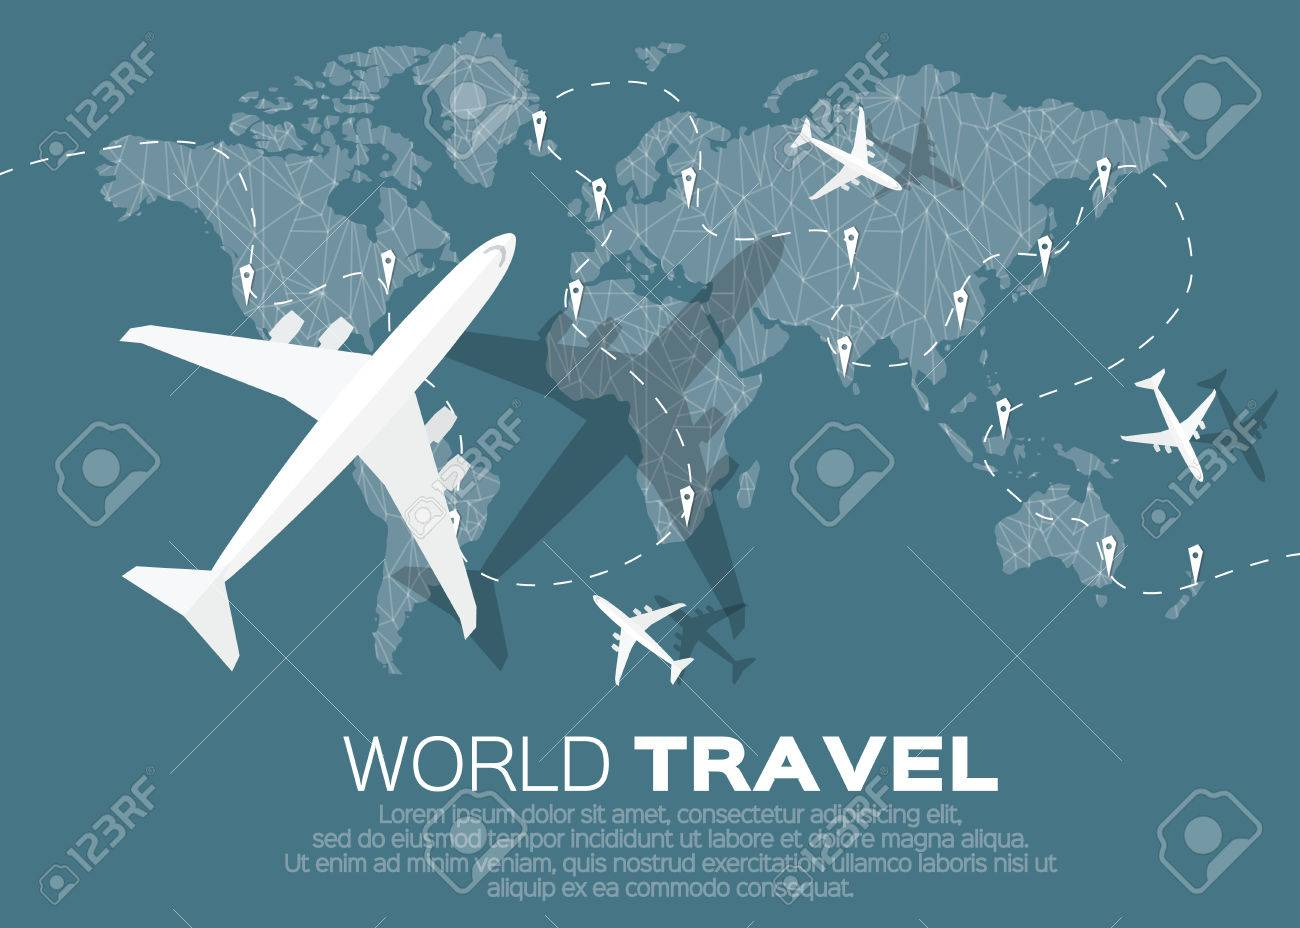 Travel World map background in polygonal style with top view airplane. Vector illustration design. - 46354182